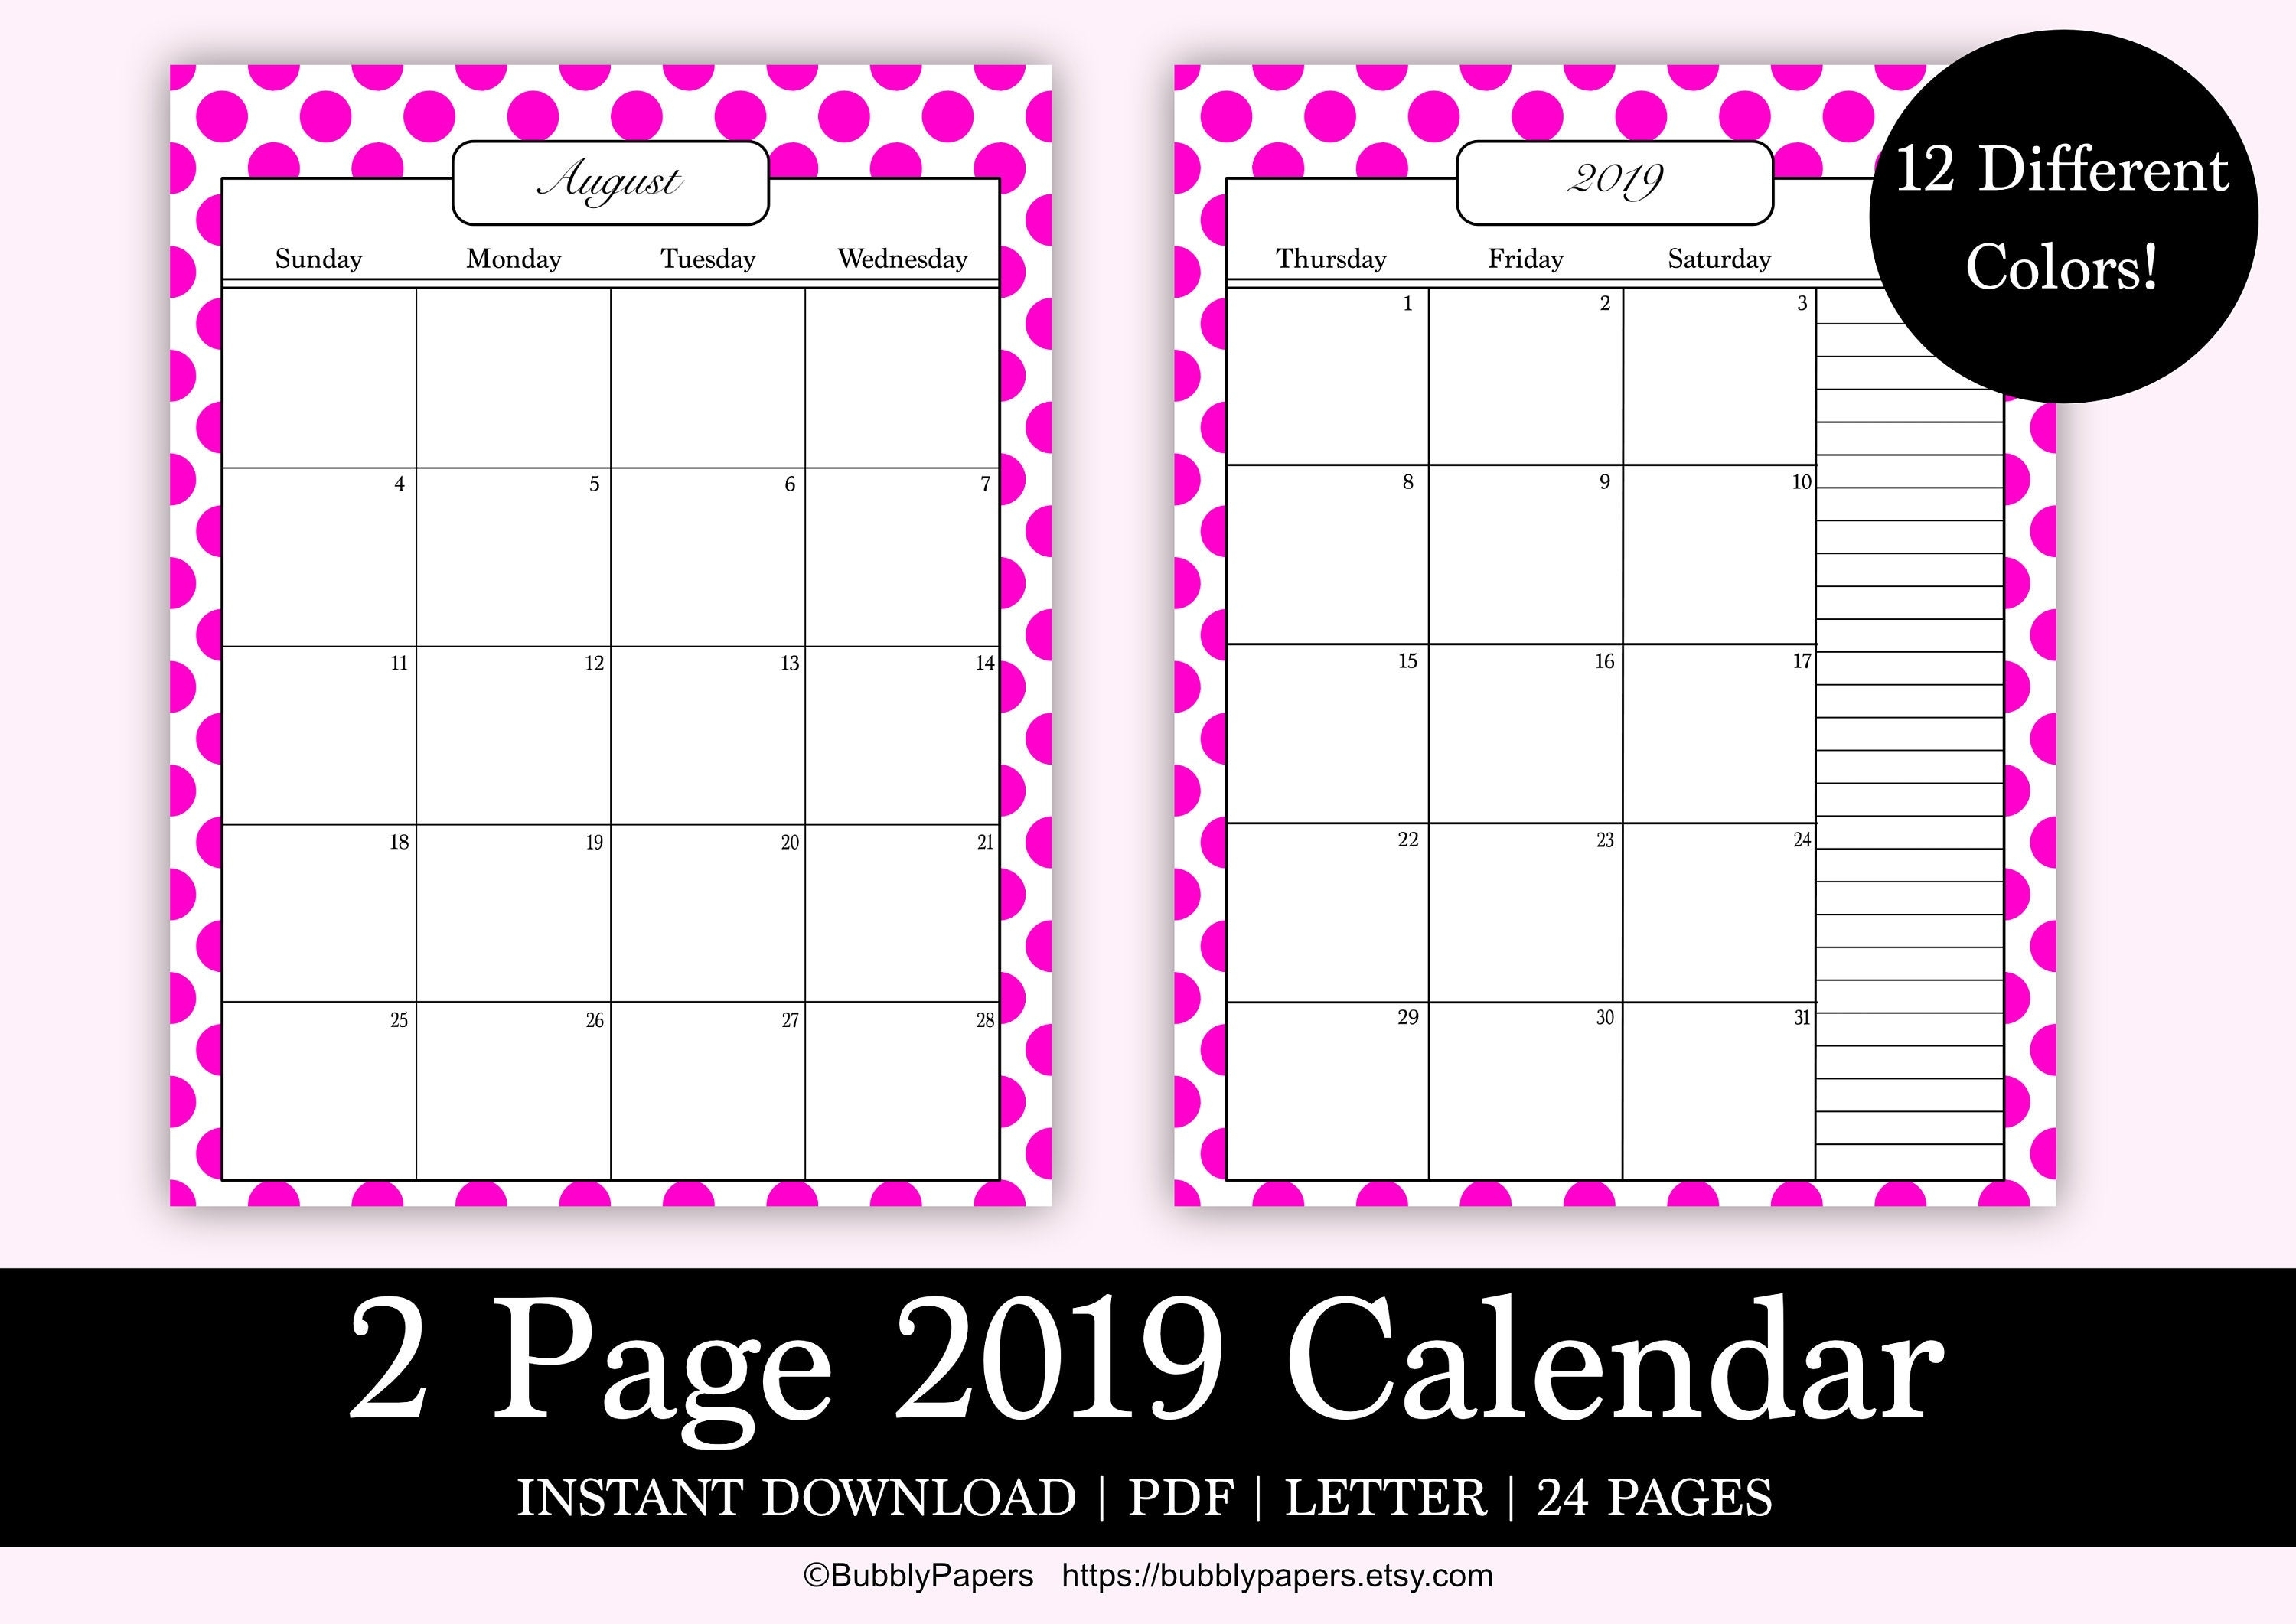 Printable Calendar 2 Page Month 2019 Planner Monthly Printable | Etsy with Monthly Calendar 2 Page To Print